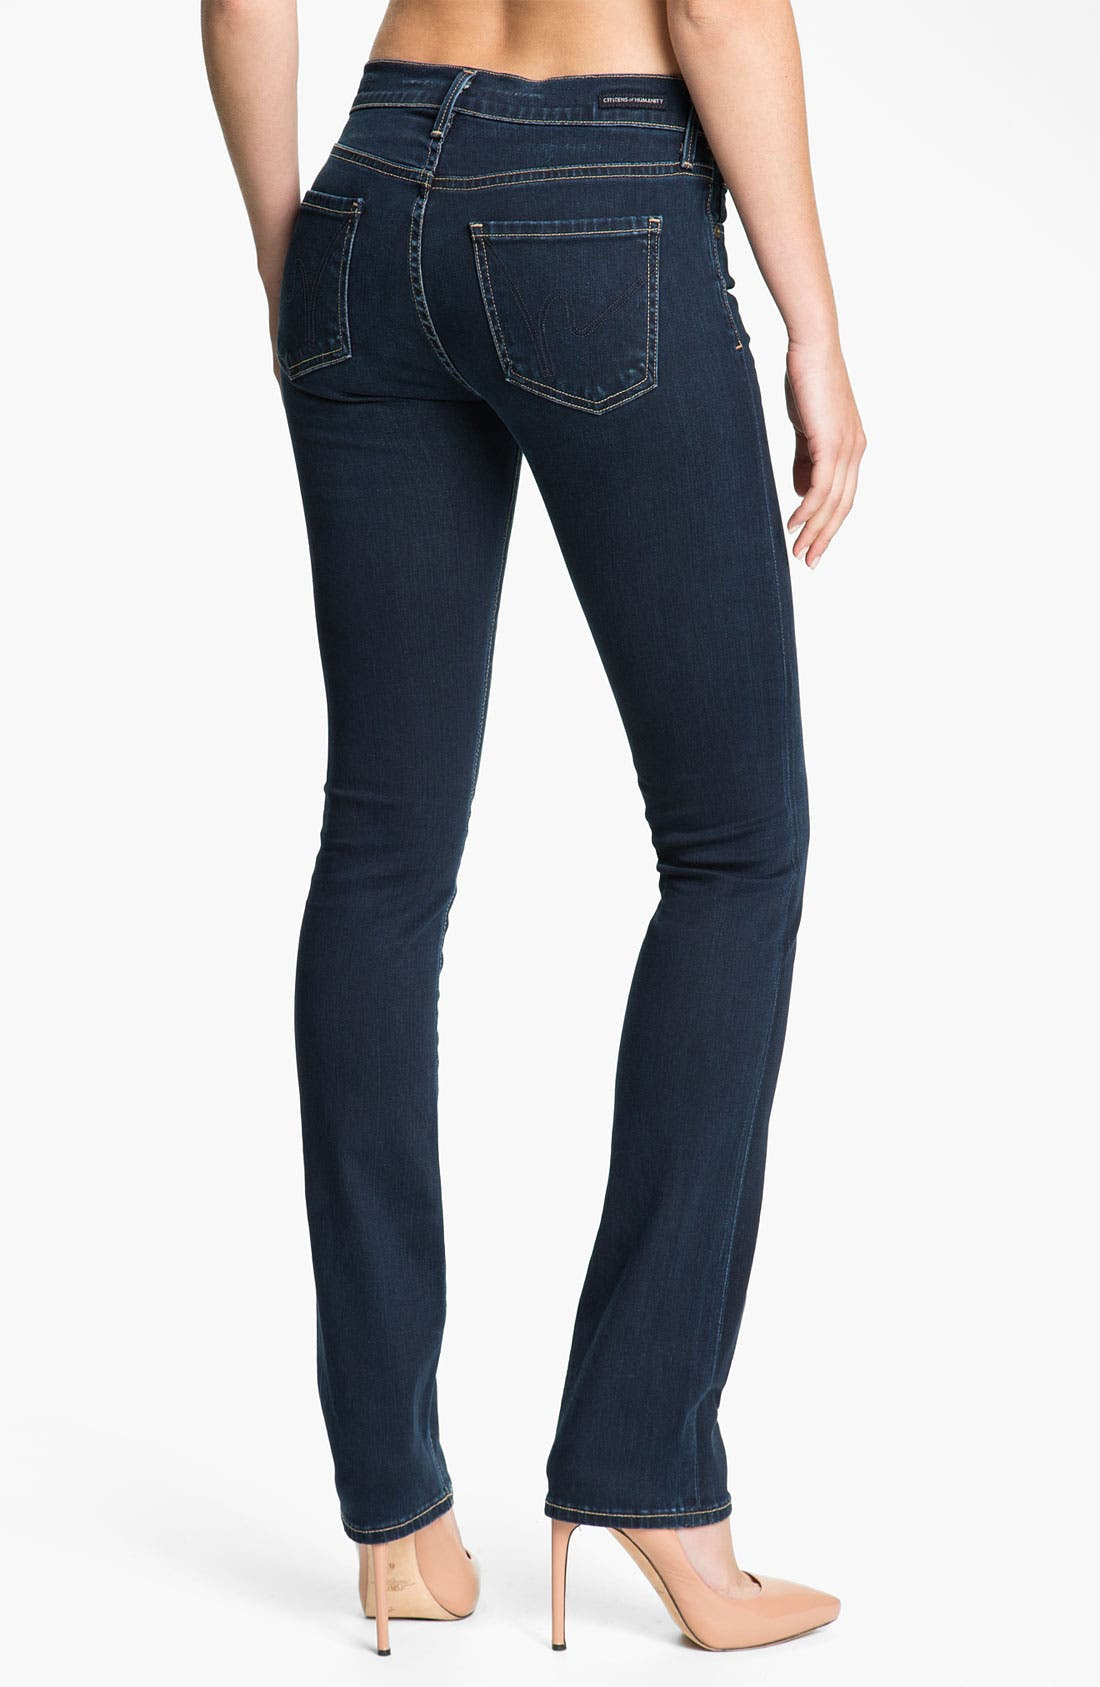 Alternate Image 2  - Citizens of Humanity 'Elson' Straight Leg Jeans (Starry)